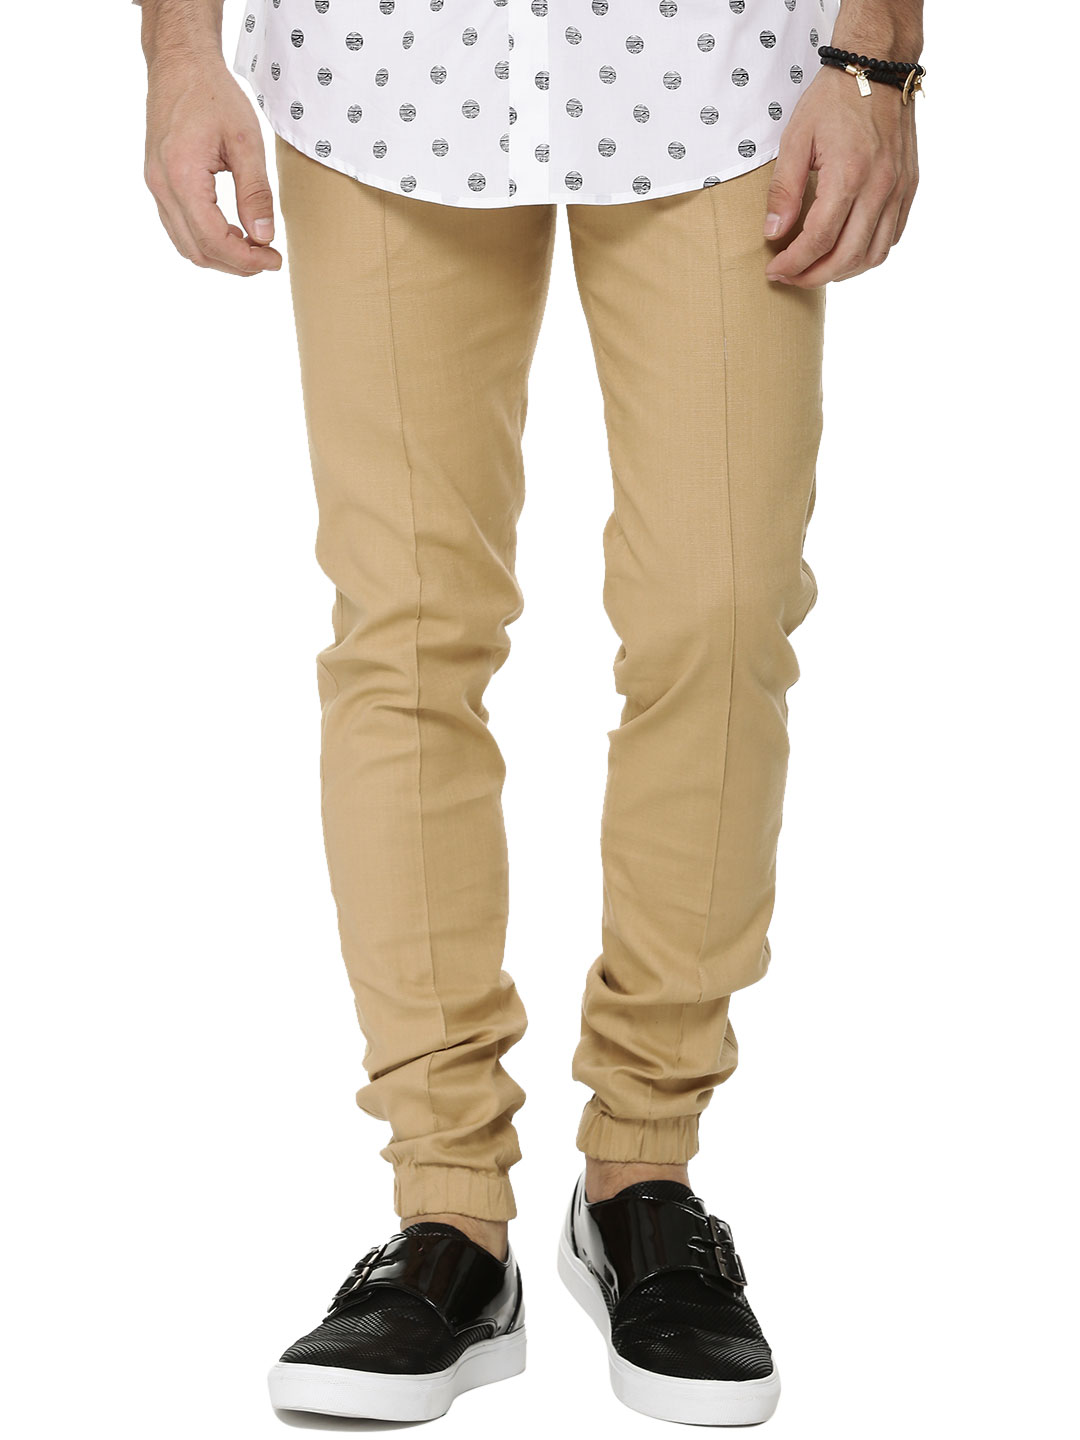 Mr Button Beige Cuffed Linen Trousers With Pocket Detail 1